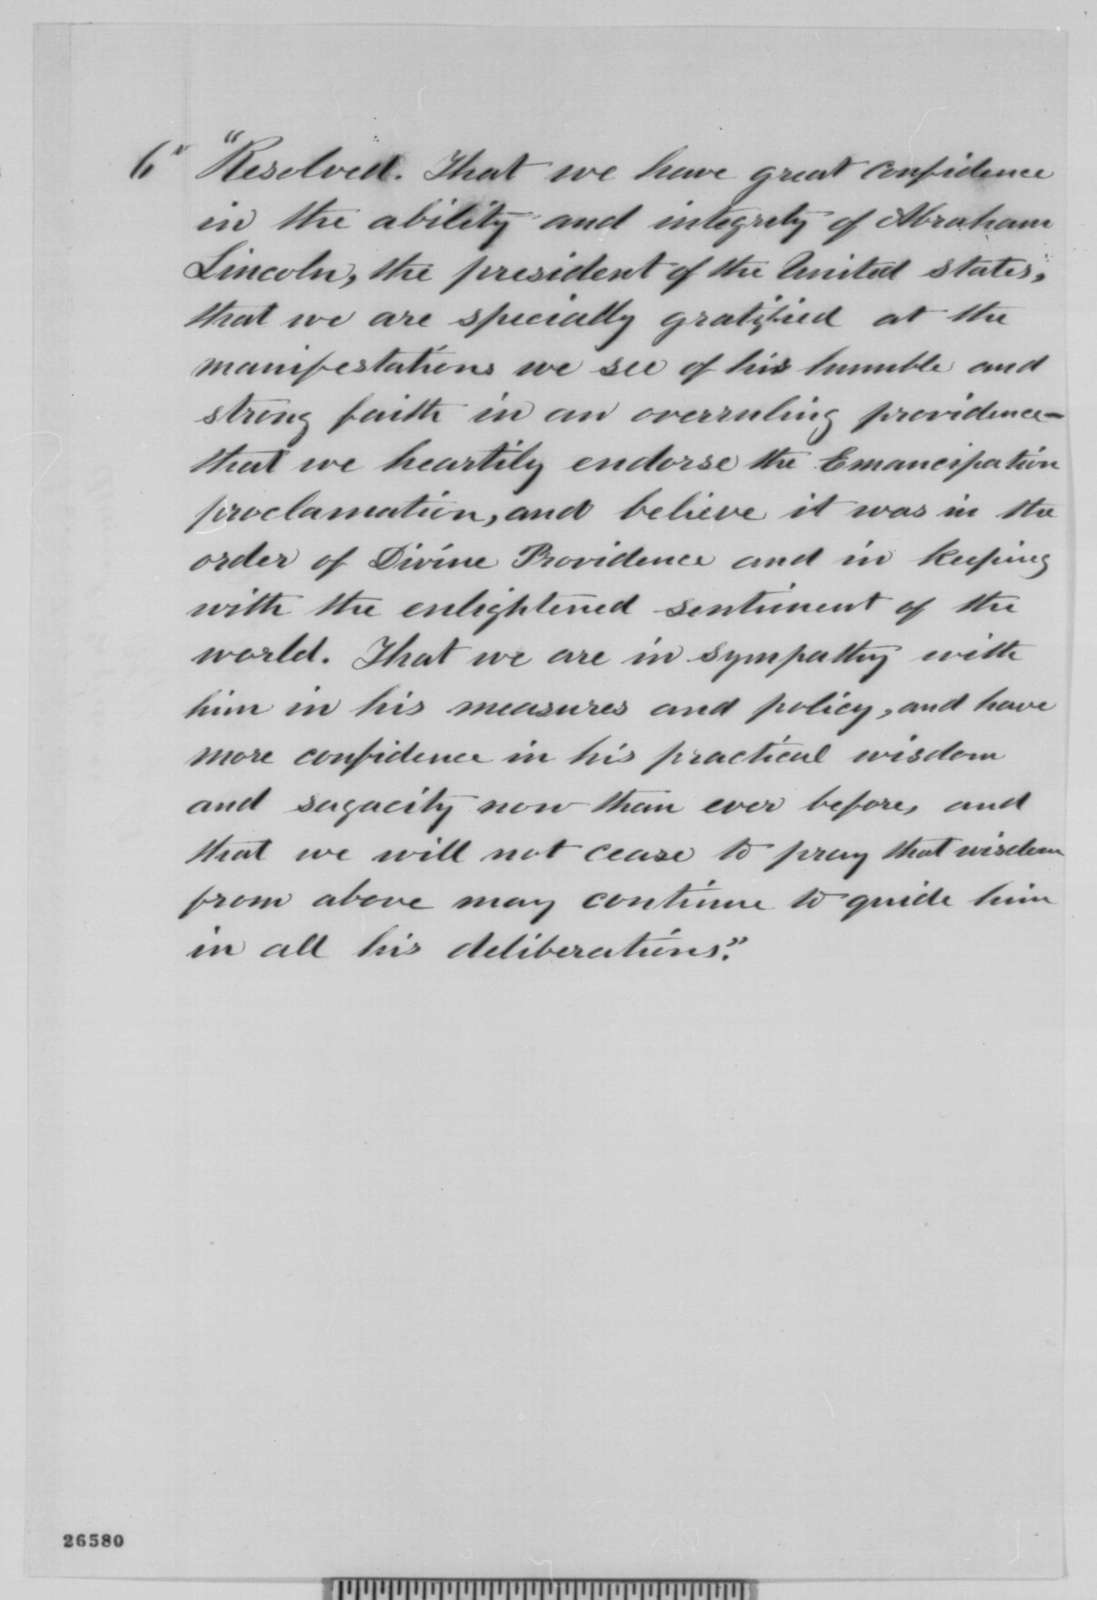 John Laverty to Abraham Lincoln, Thursday, September 24, 1863  (Sends resolution from Indiana Annual Conference)